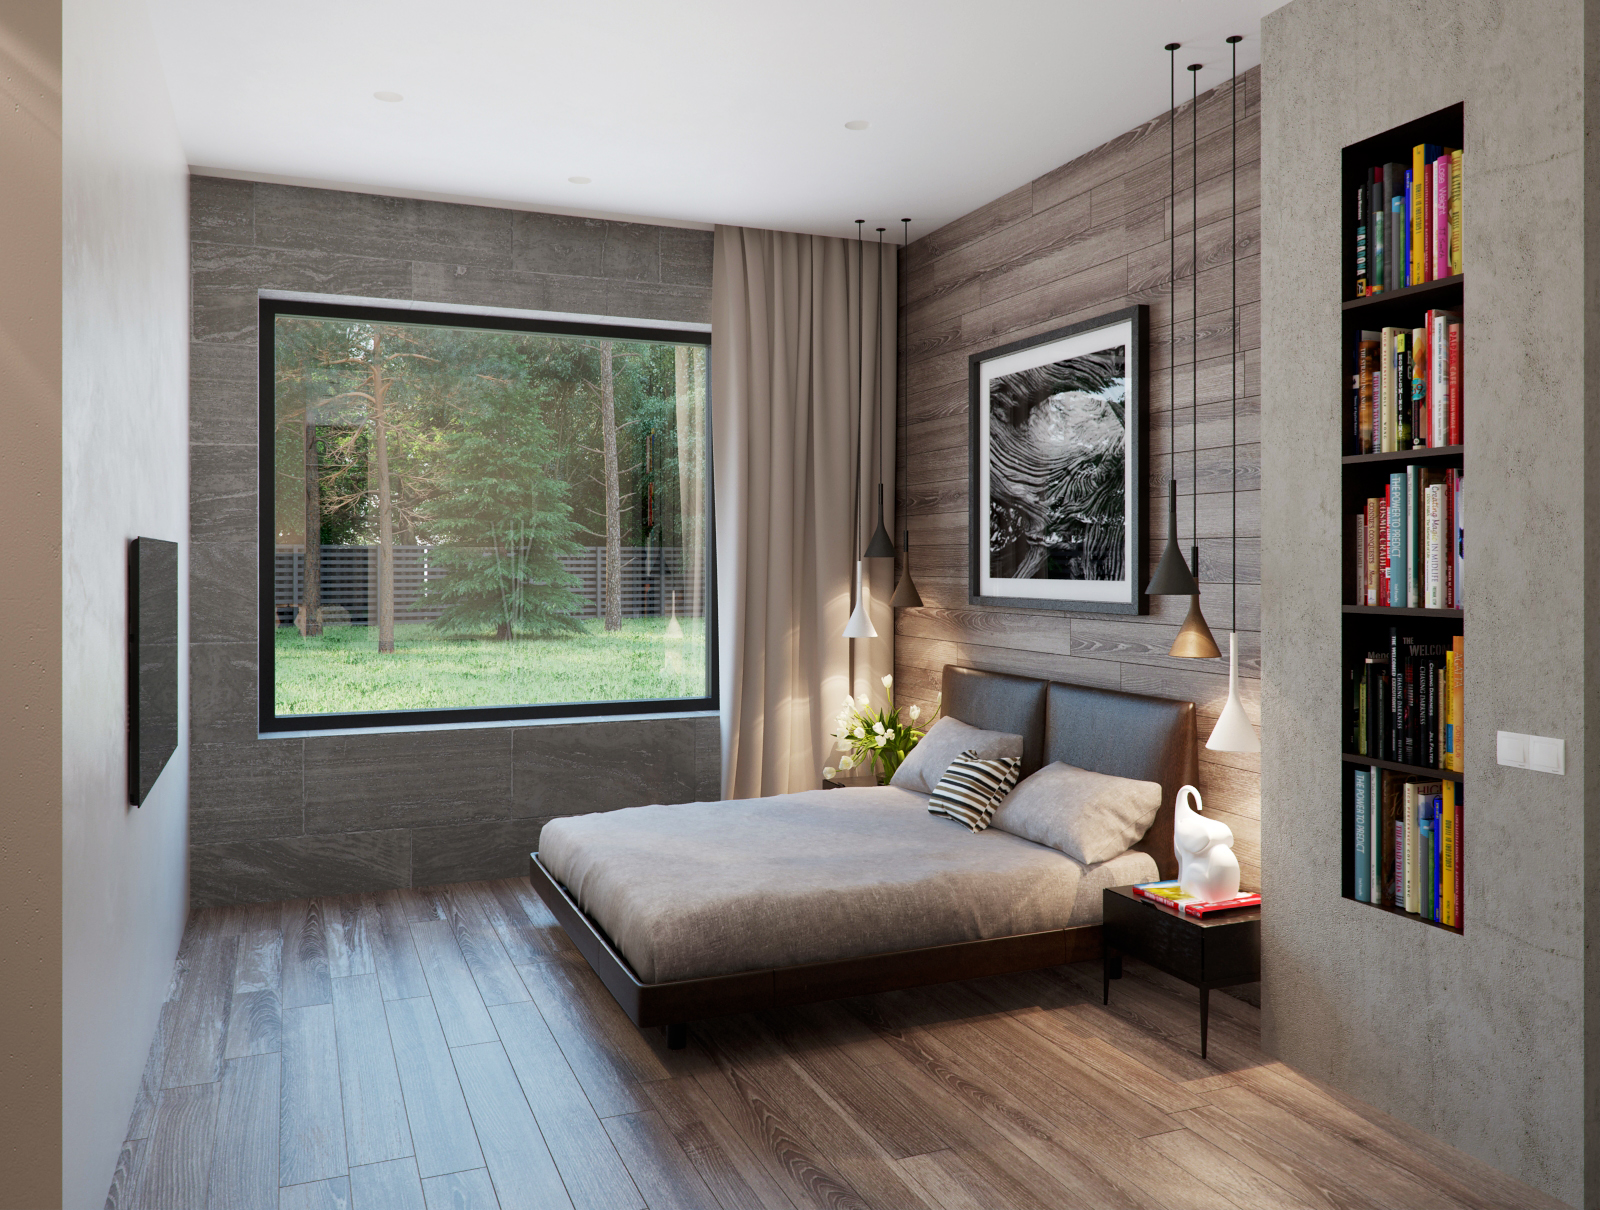 20 Small Bedroom Ideas that will leave you speechless ... on Small Bedroom Ideas  id=33262